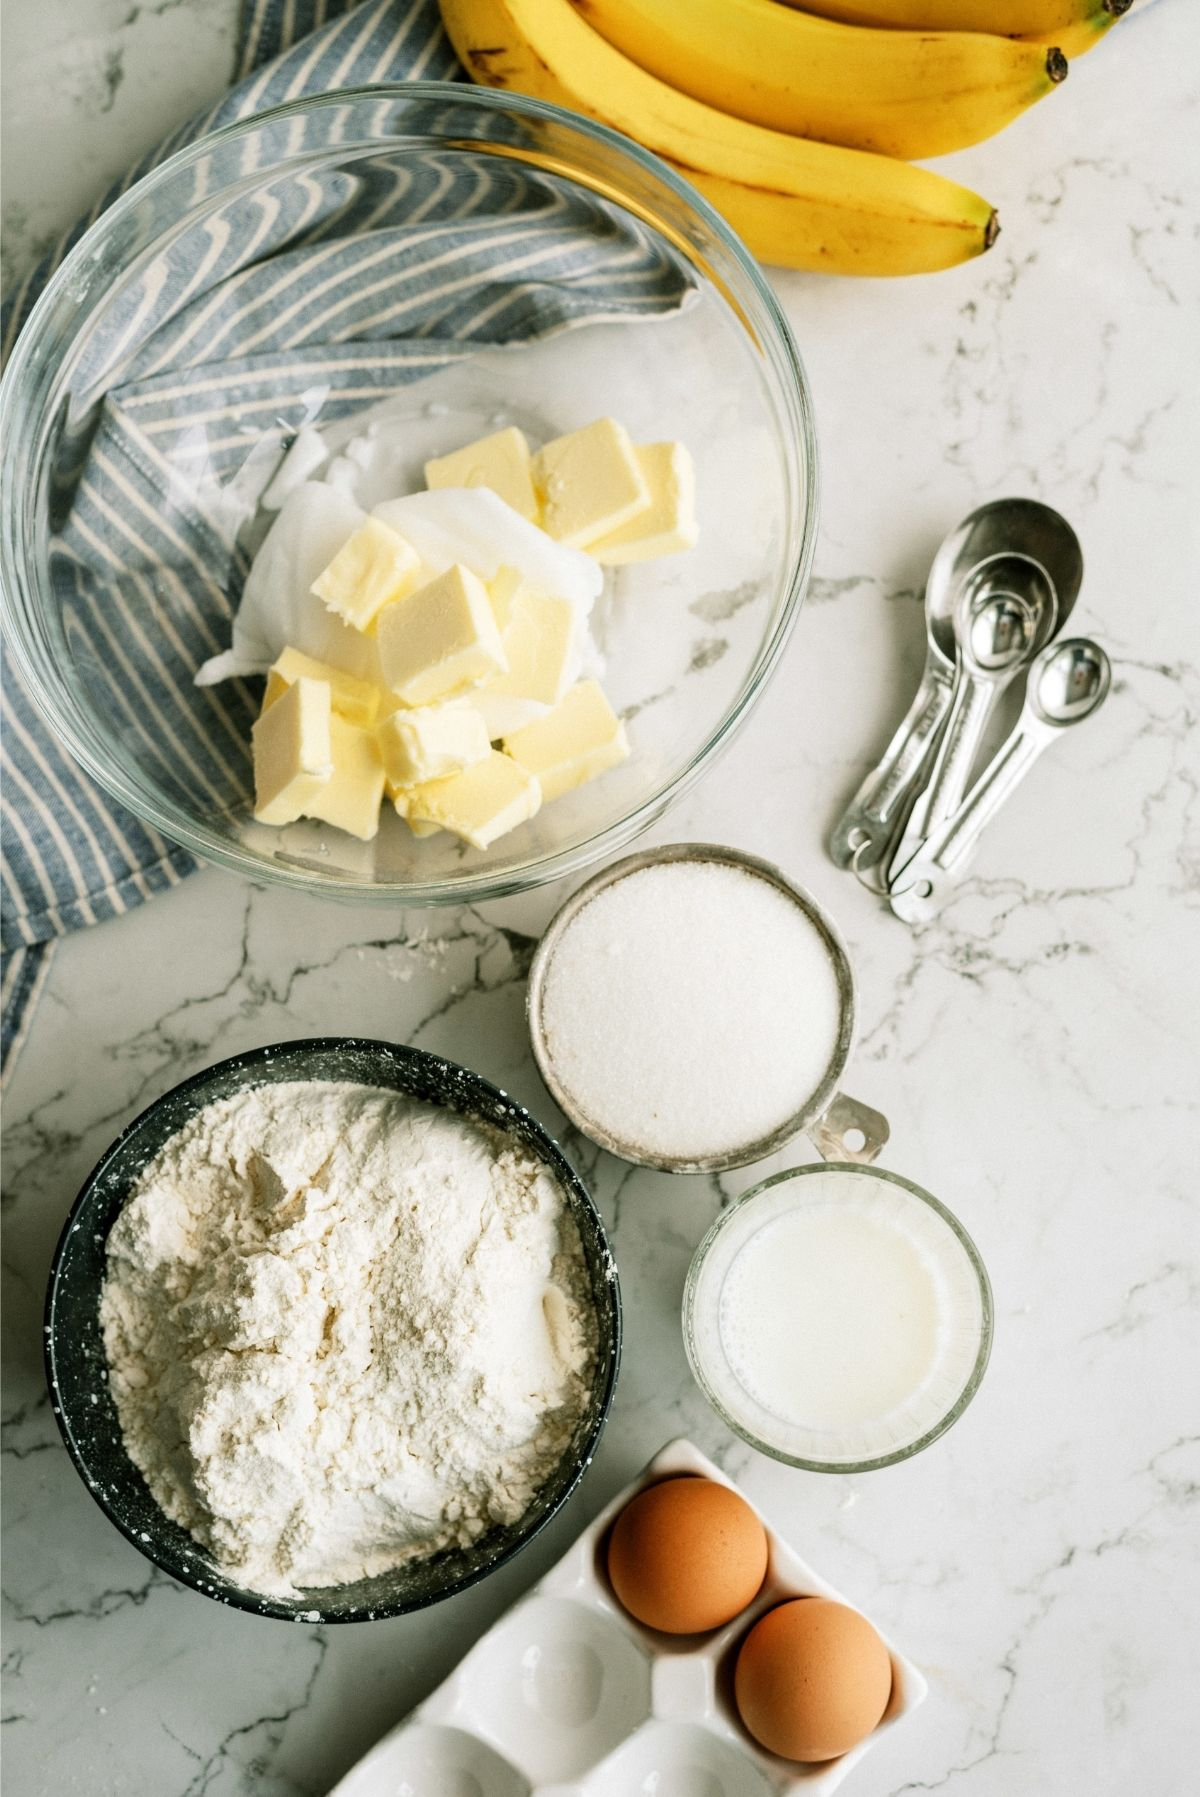 Ingredients for Frosted Banana Cookies